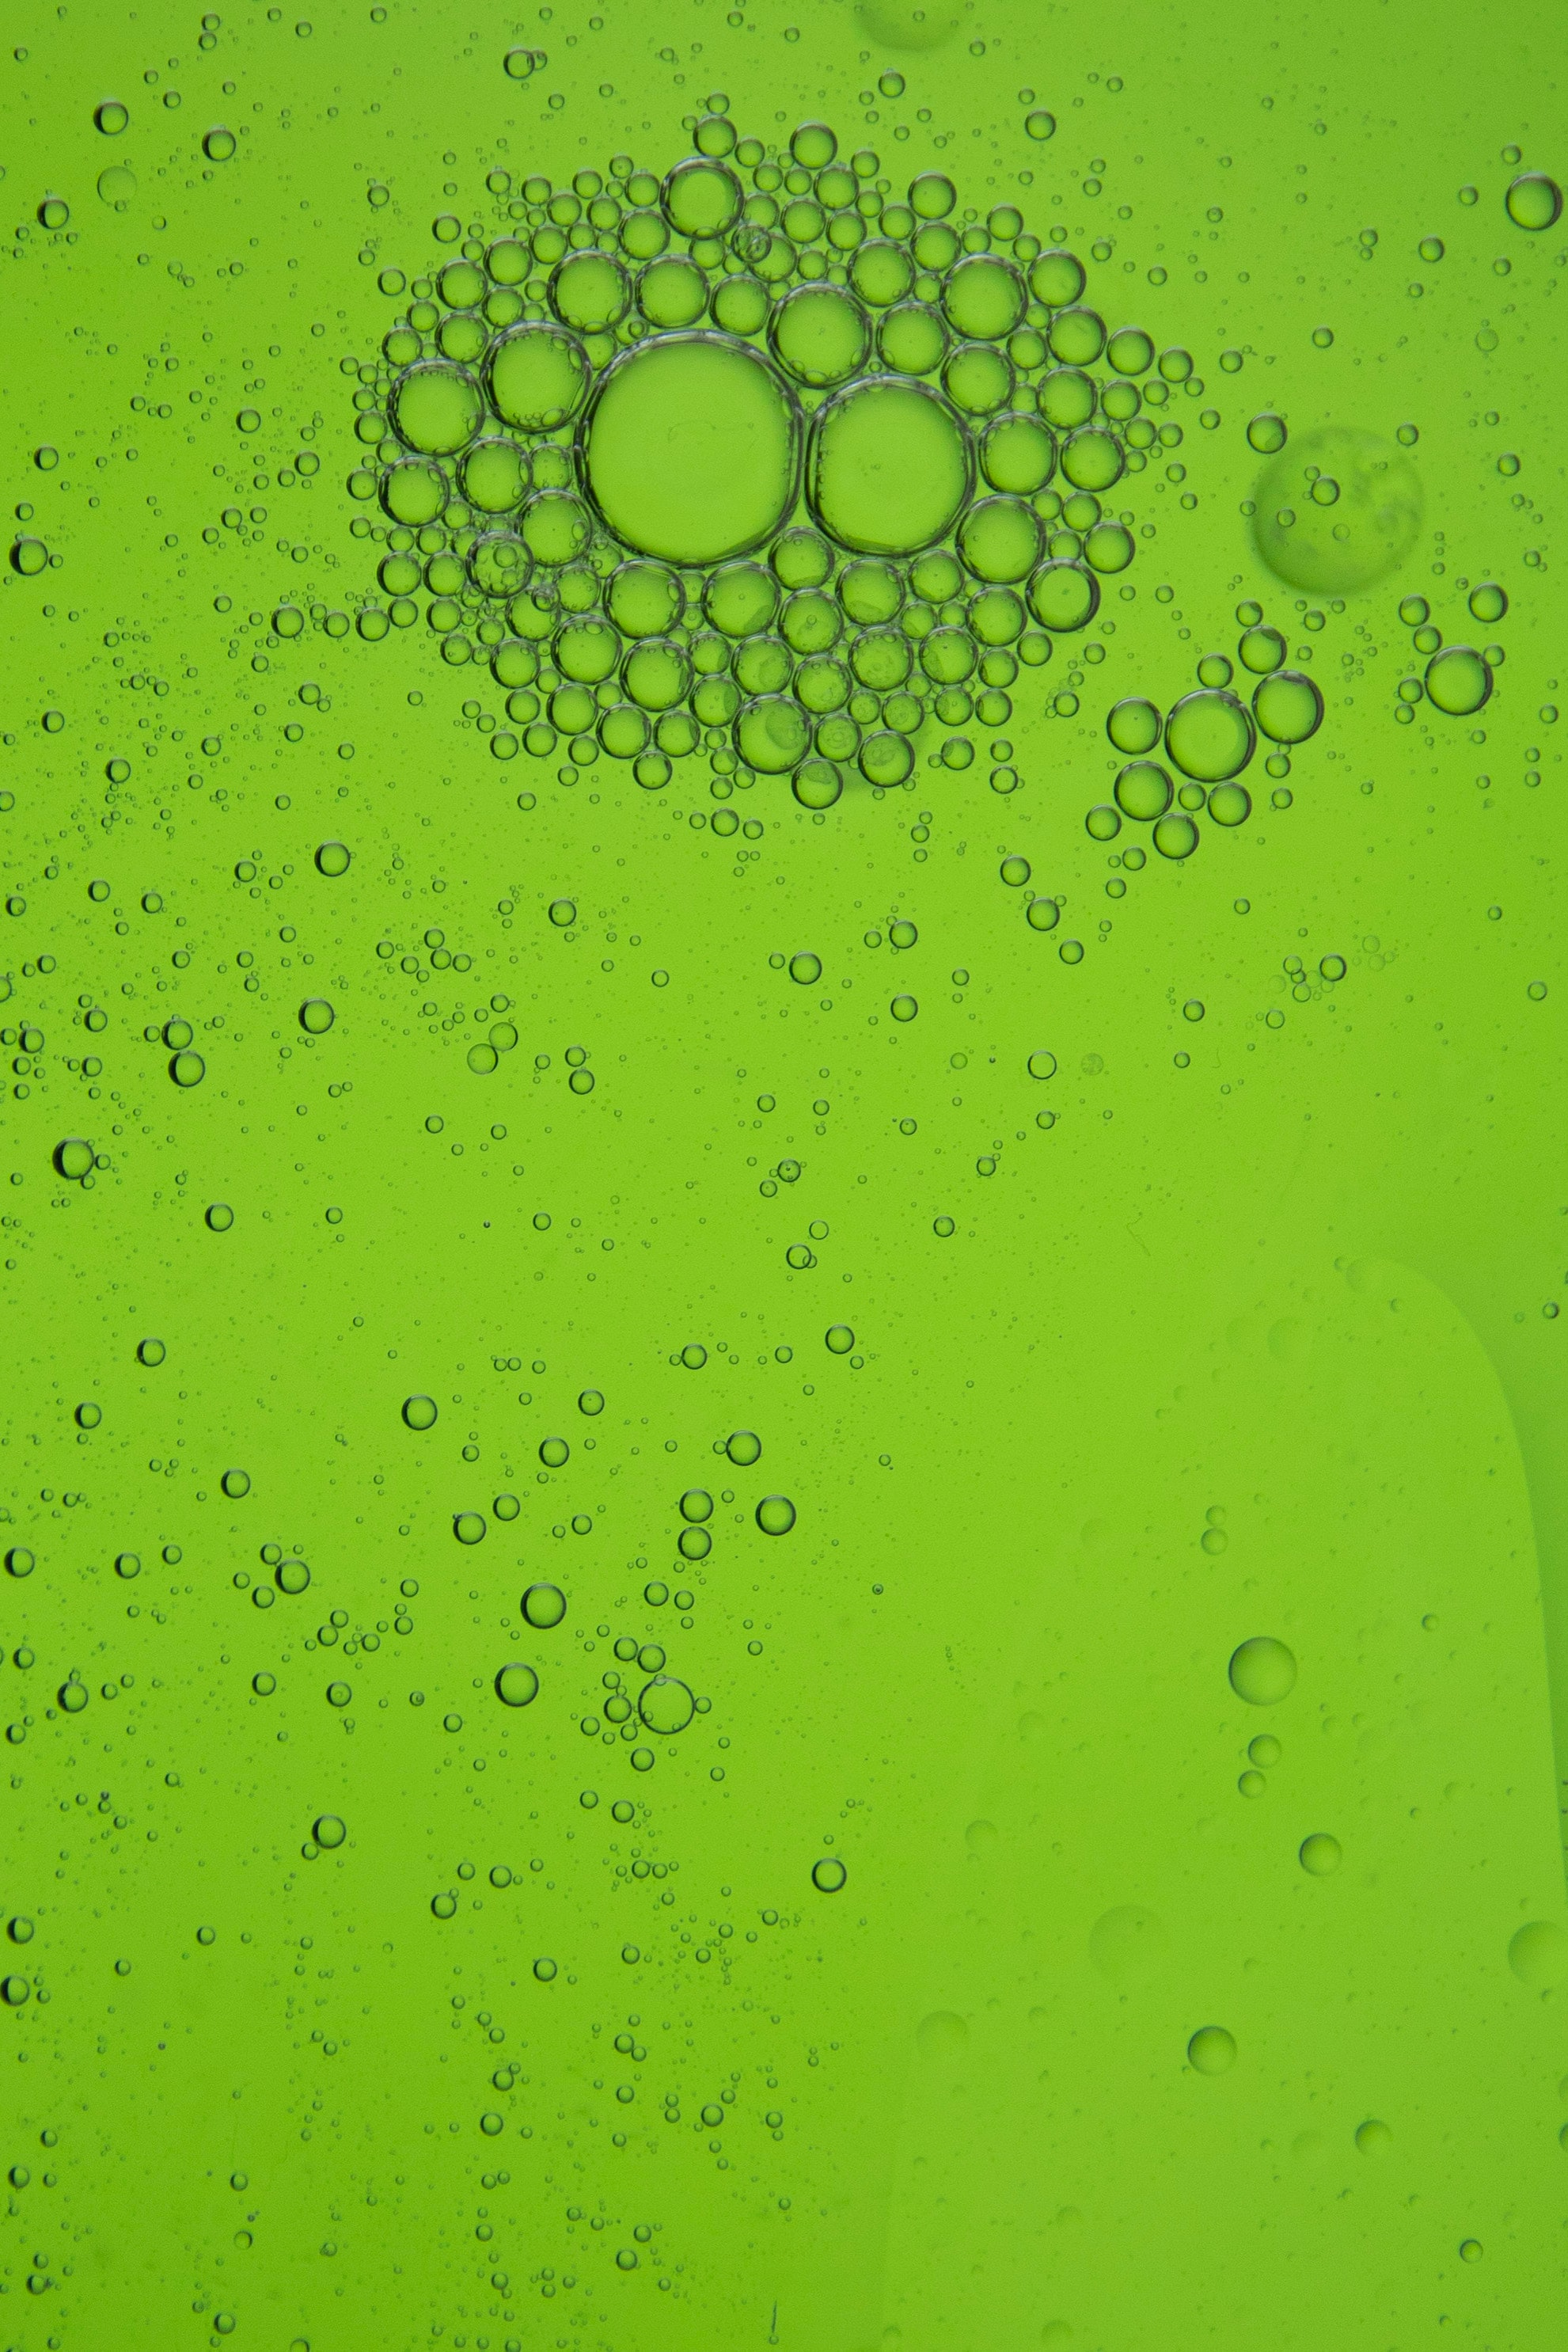 110450 download wallpaper Abstract, Water, Round, Bubbles screensavers and pictures for free